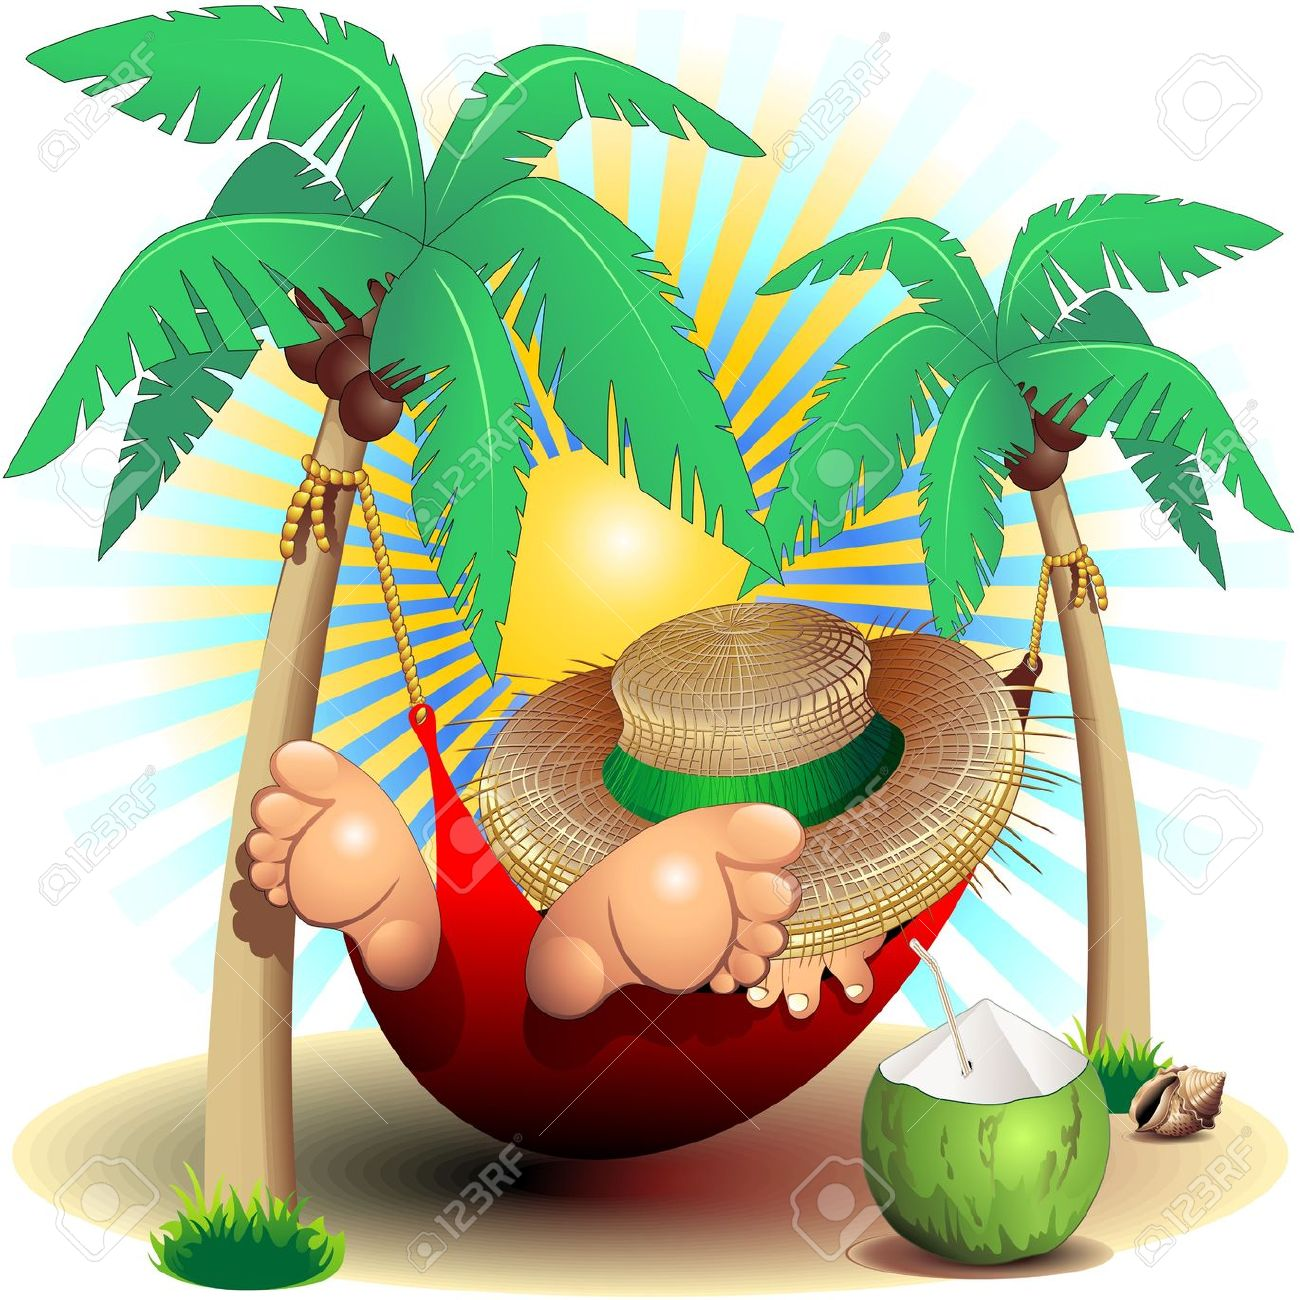 Exotic clipart 20 free Cliparts | Download images on ...